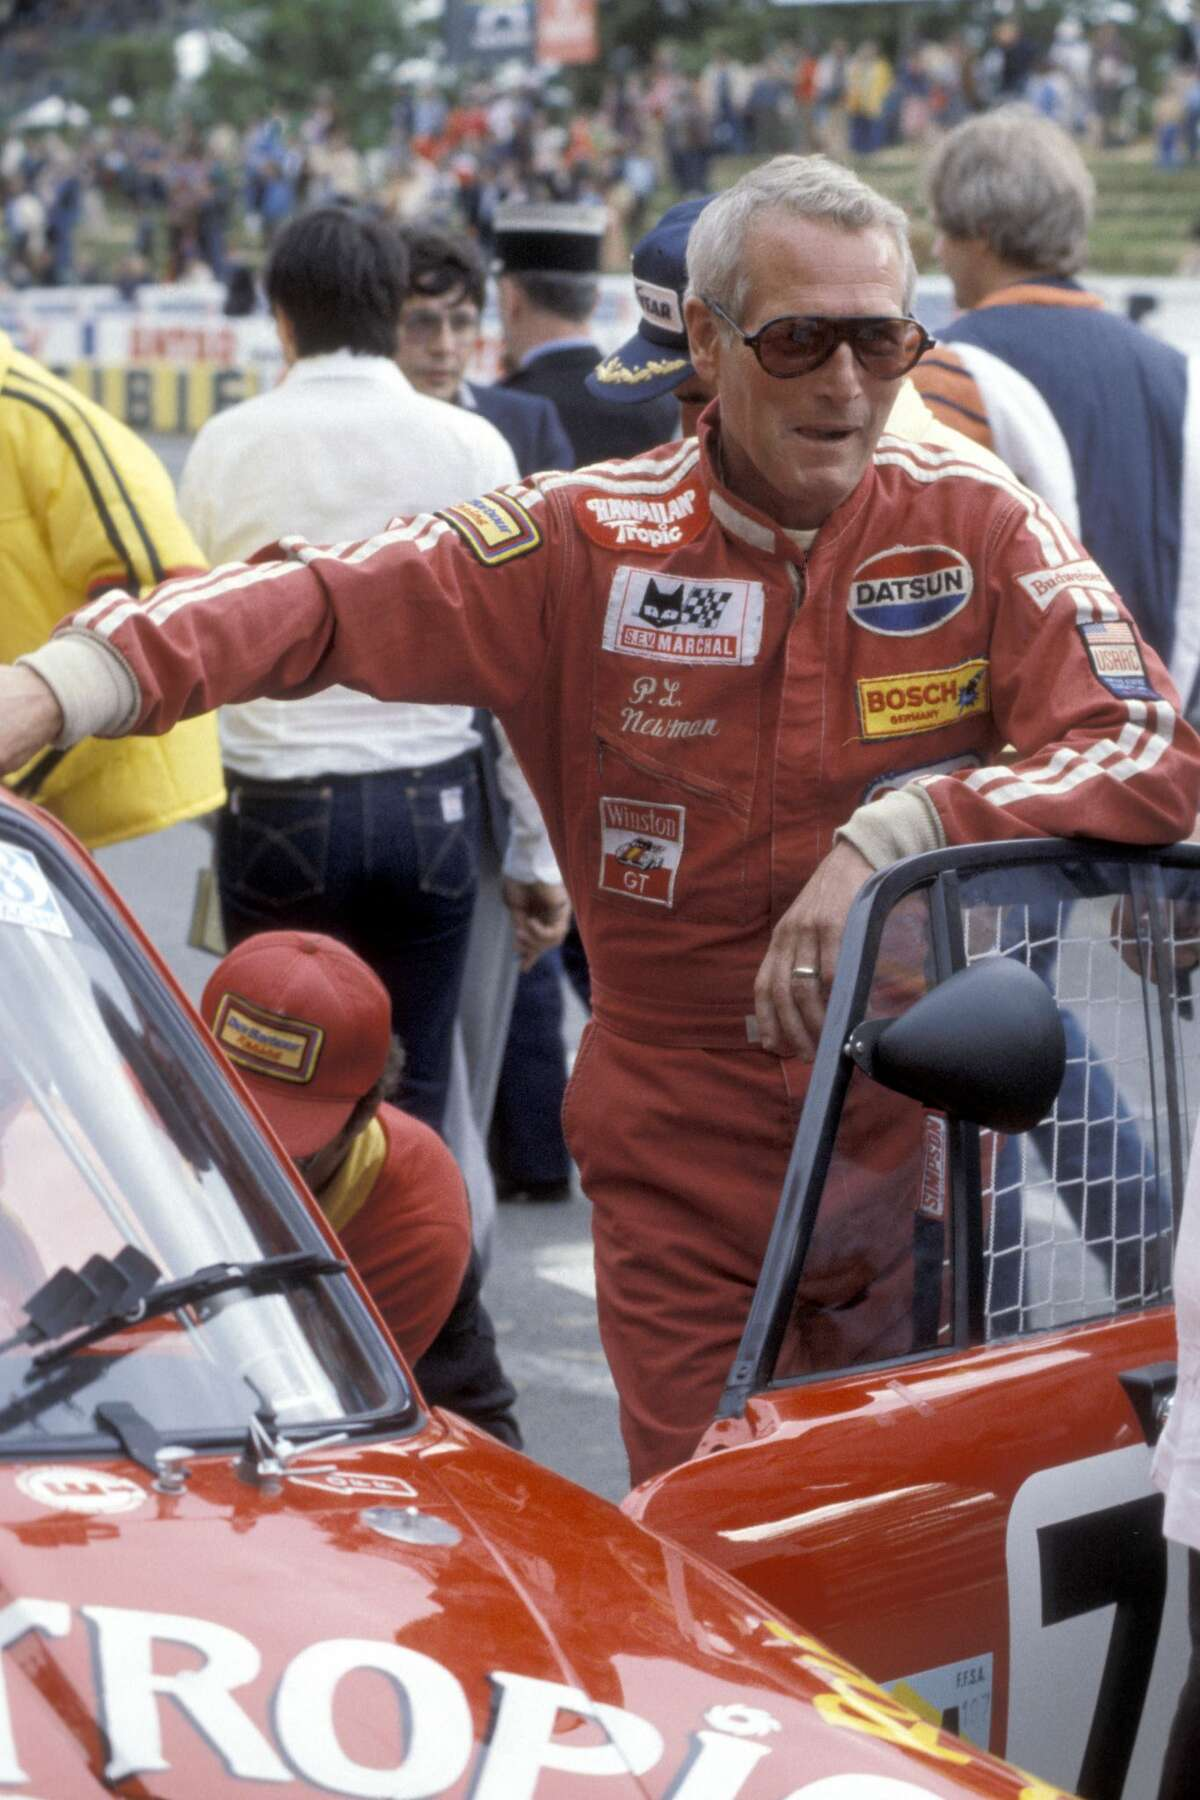 Paul Newman participating in the 24-hour Le Mans car race in 1979.